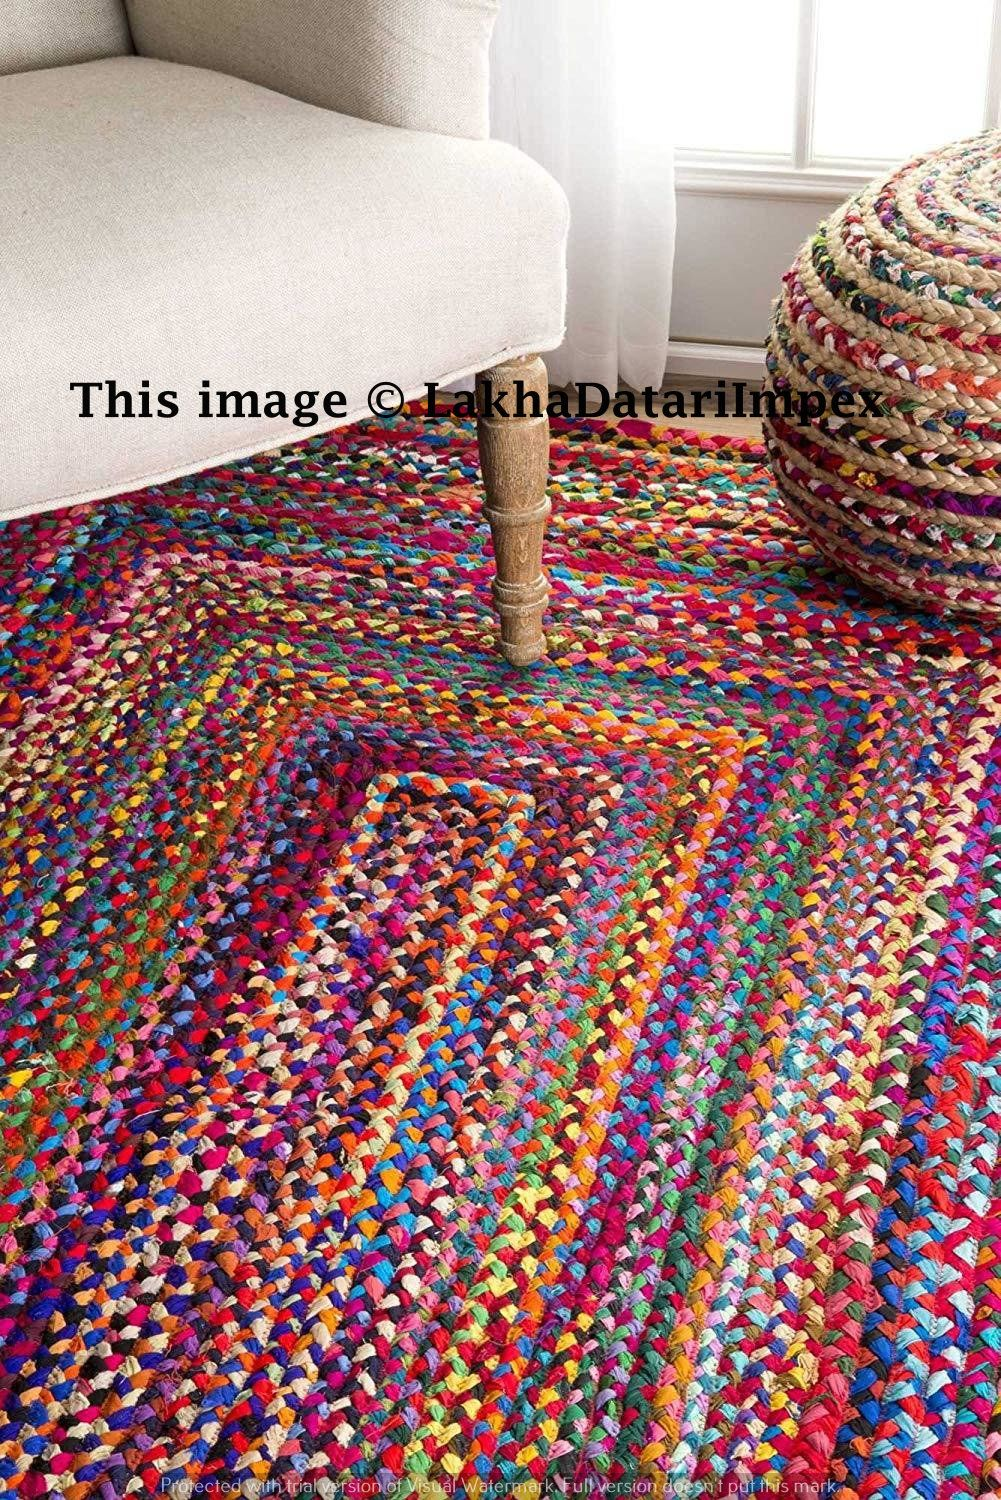 Multi Color Floor Decor Rugs Indian Braided Cotton Rug Rag Hand Woven Natural Area Rugs For Home Decor Rugs Liv Braided Area Rugs Braided Rag Rugs Braided Rugs